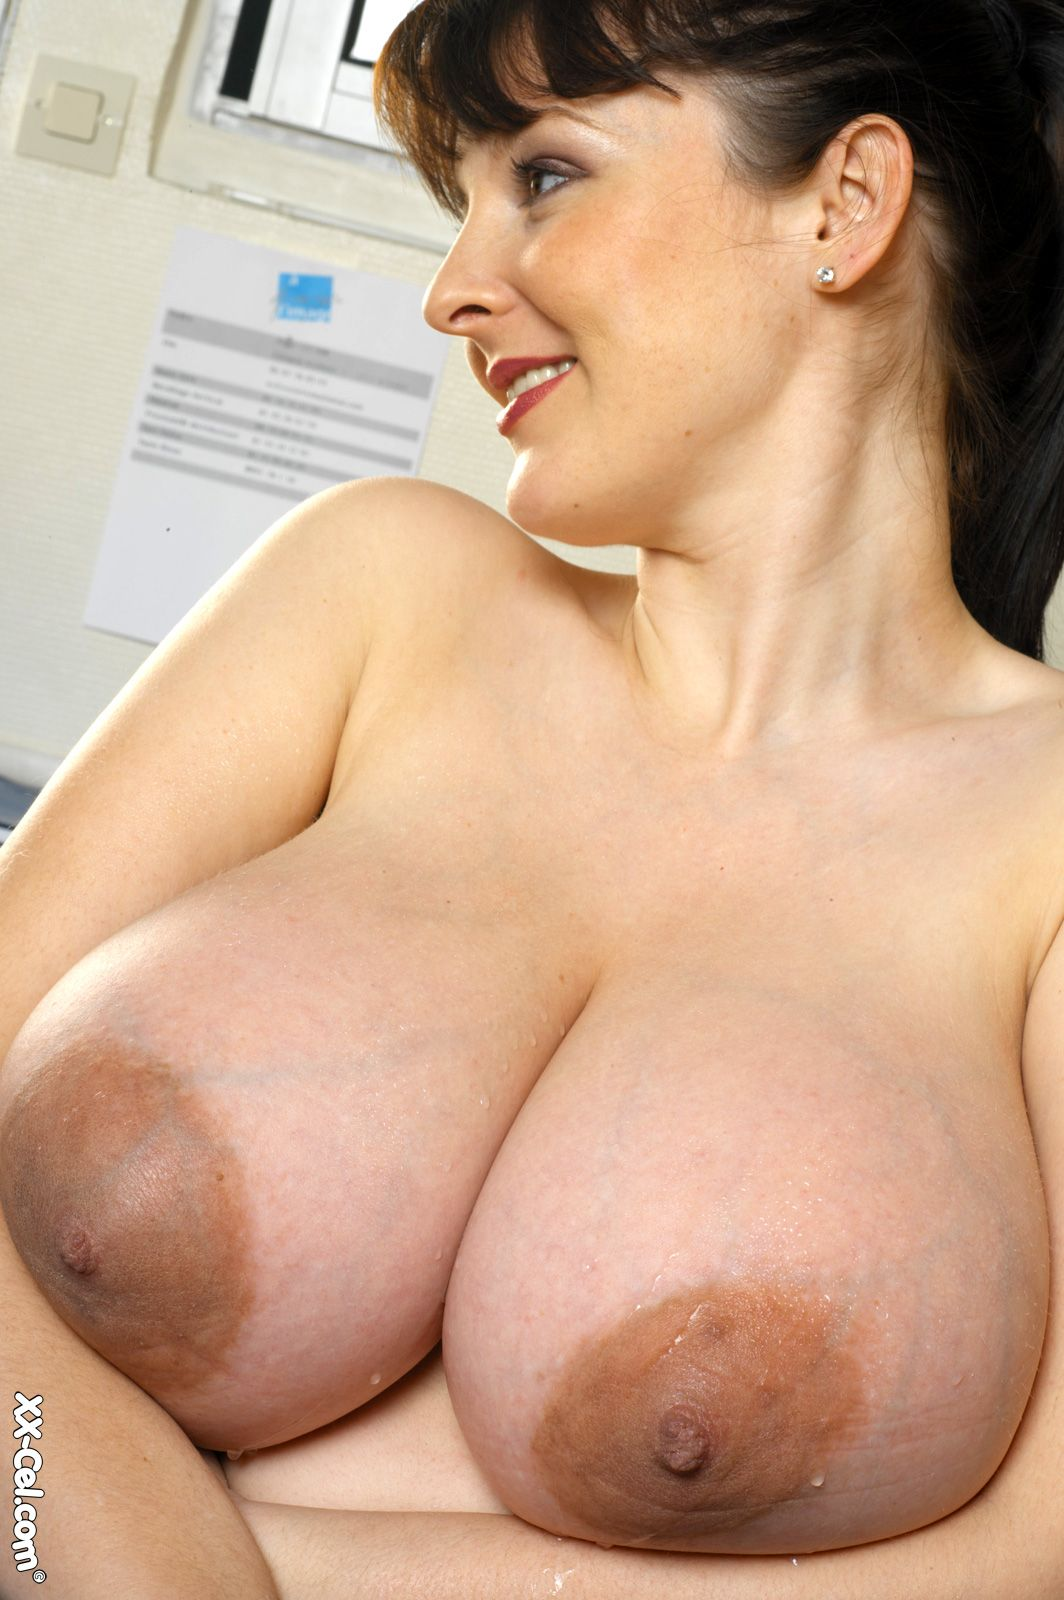 Nude skinny women with deflated tits